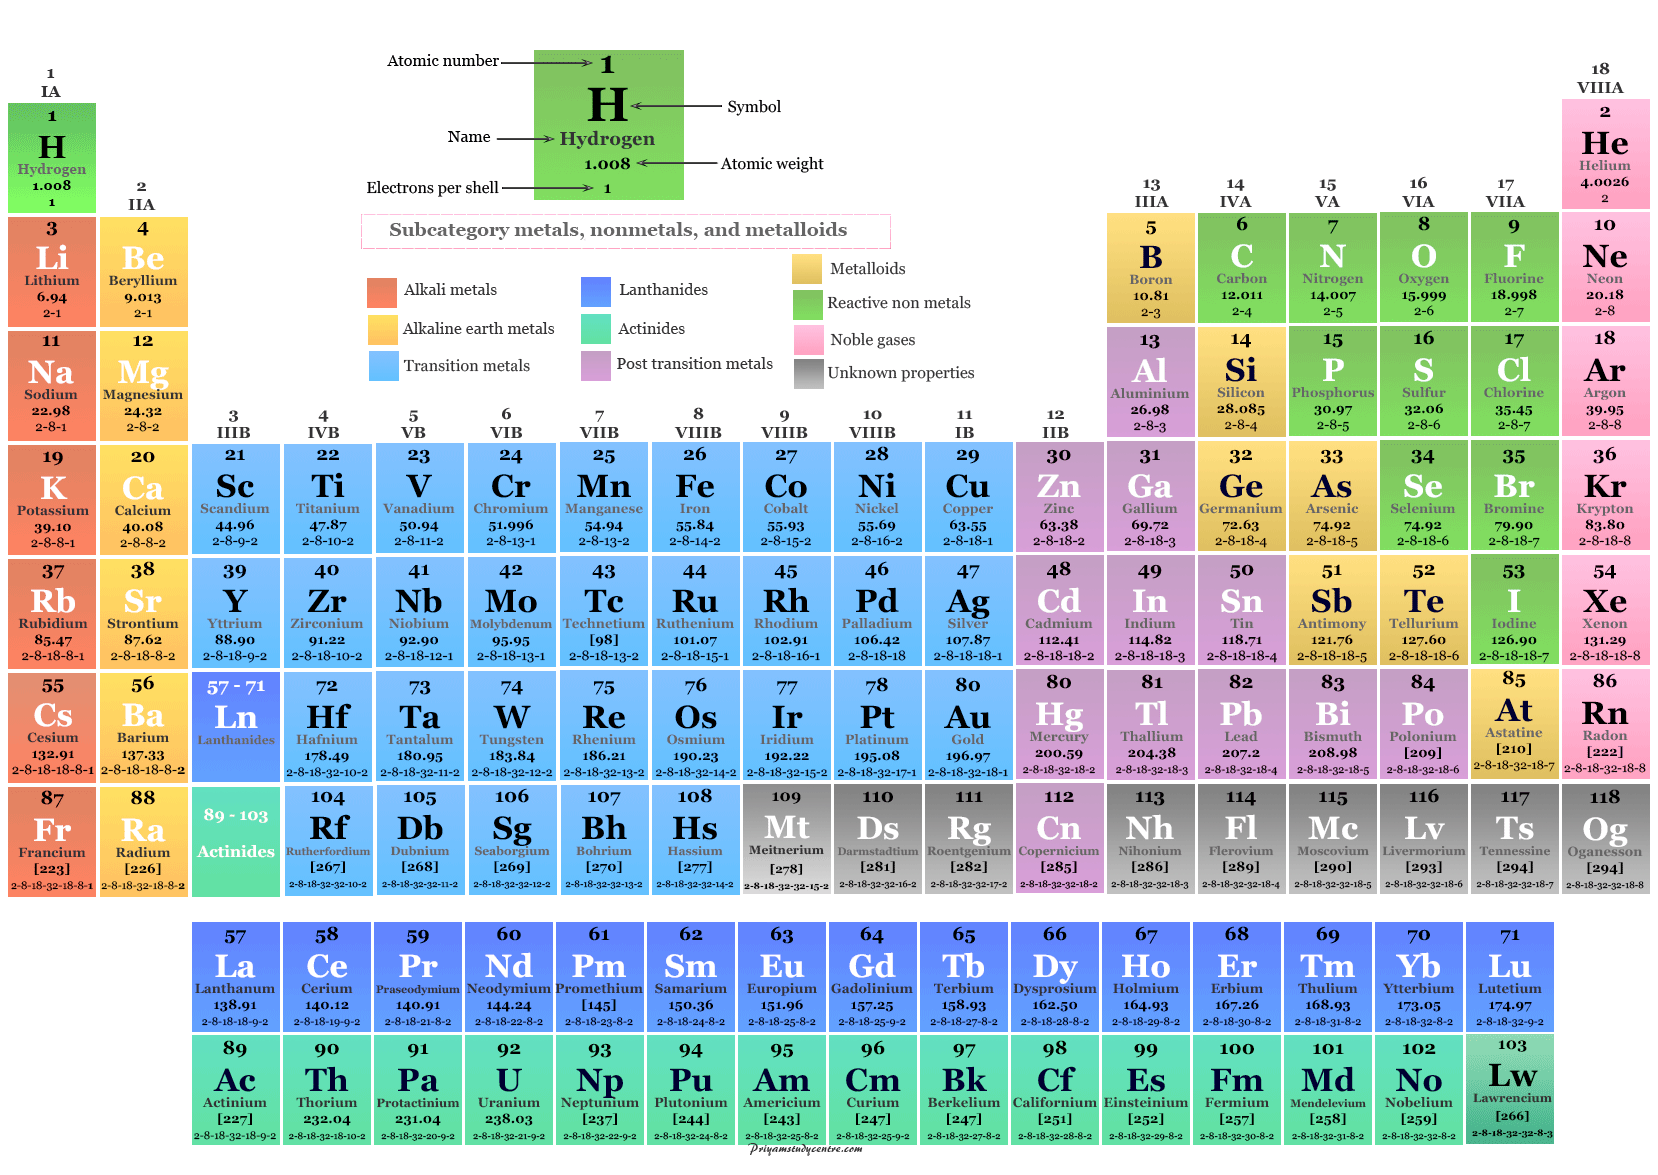 Periodic table chemical elements names, symbol, atomic numbers, and properties